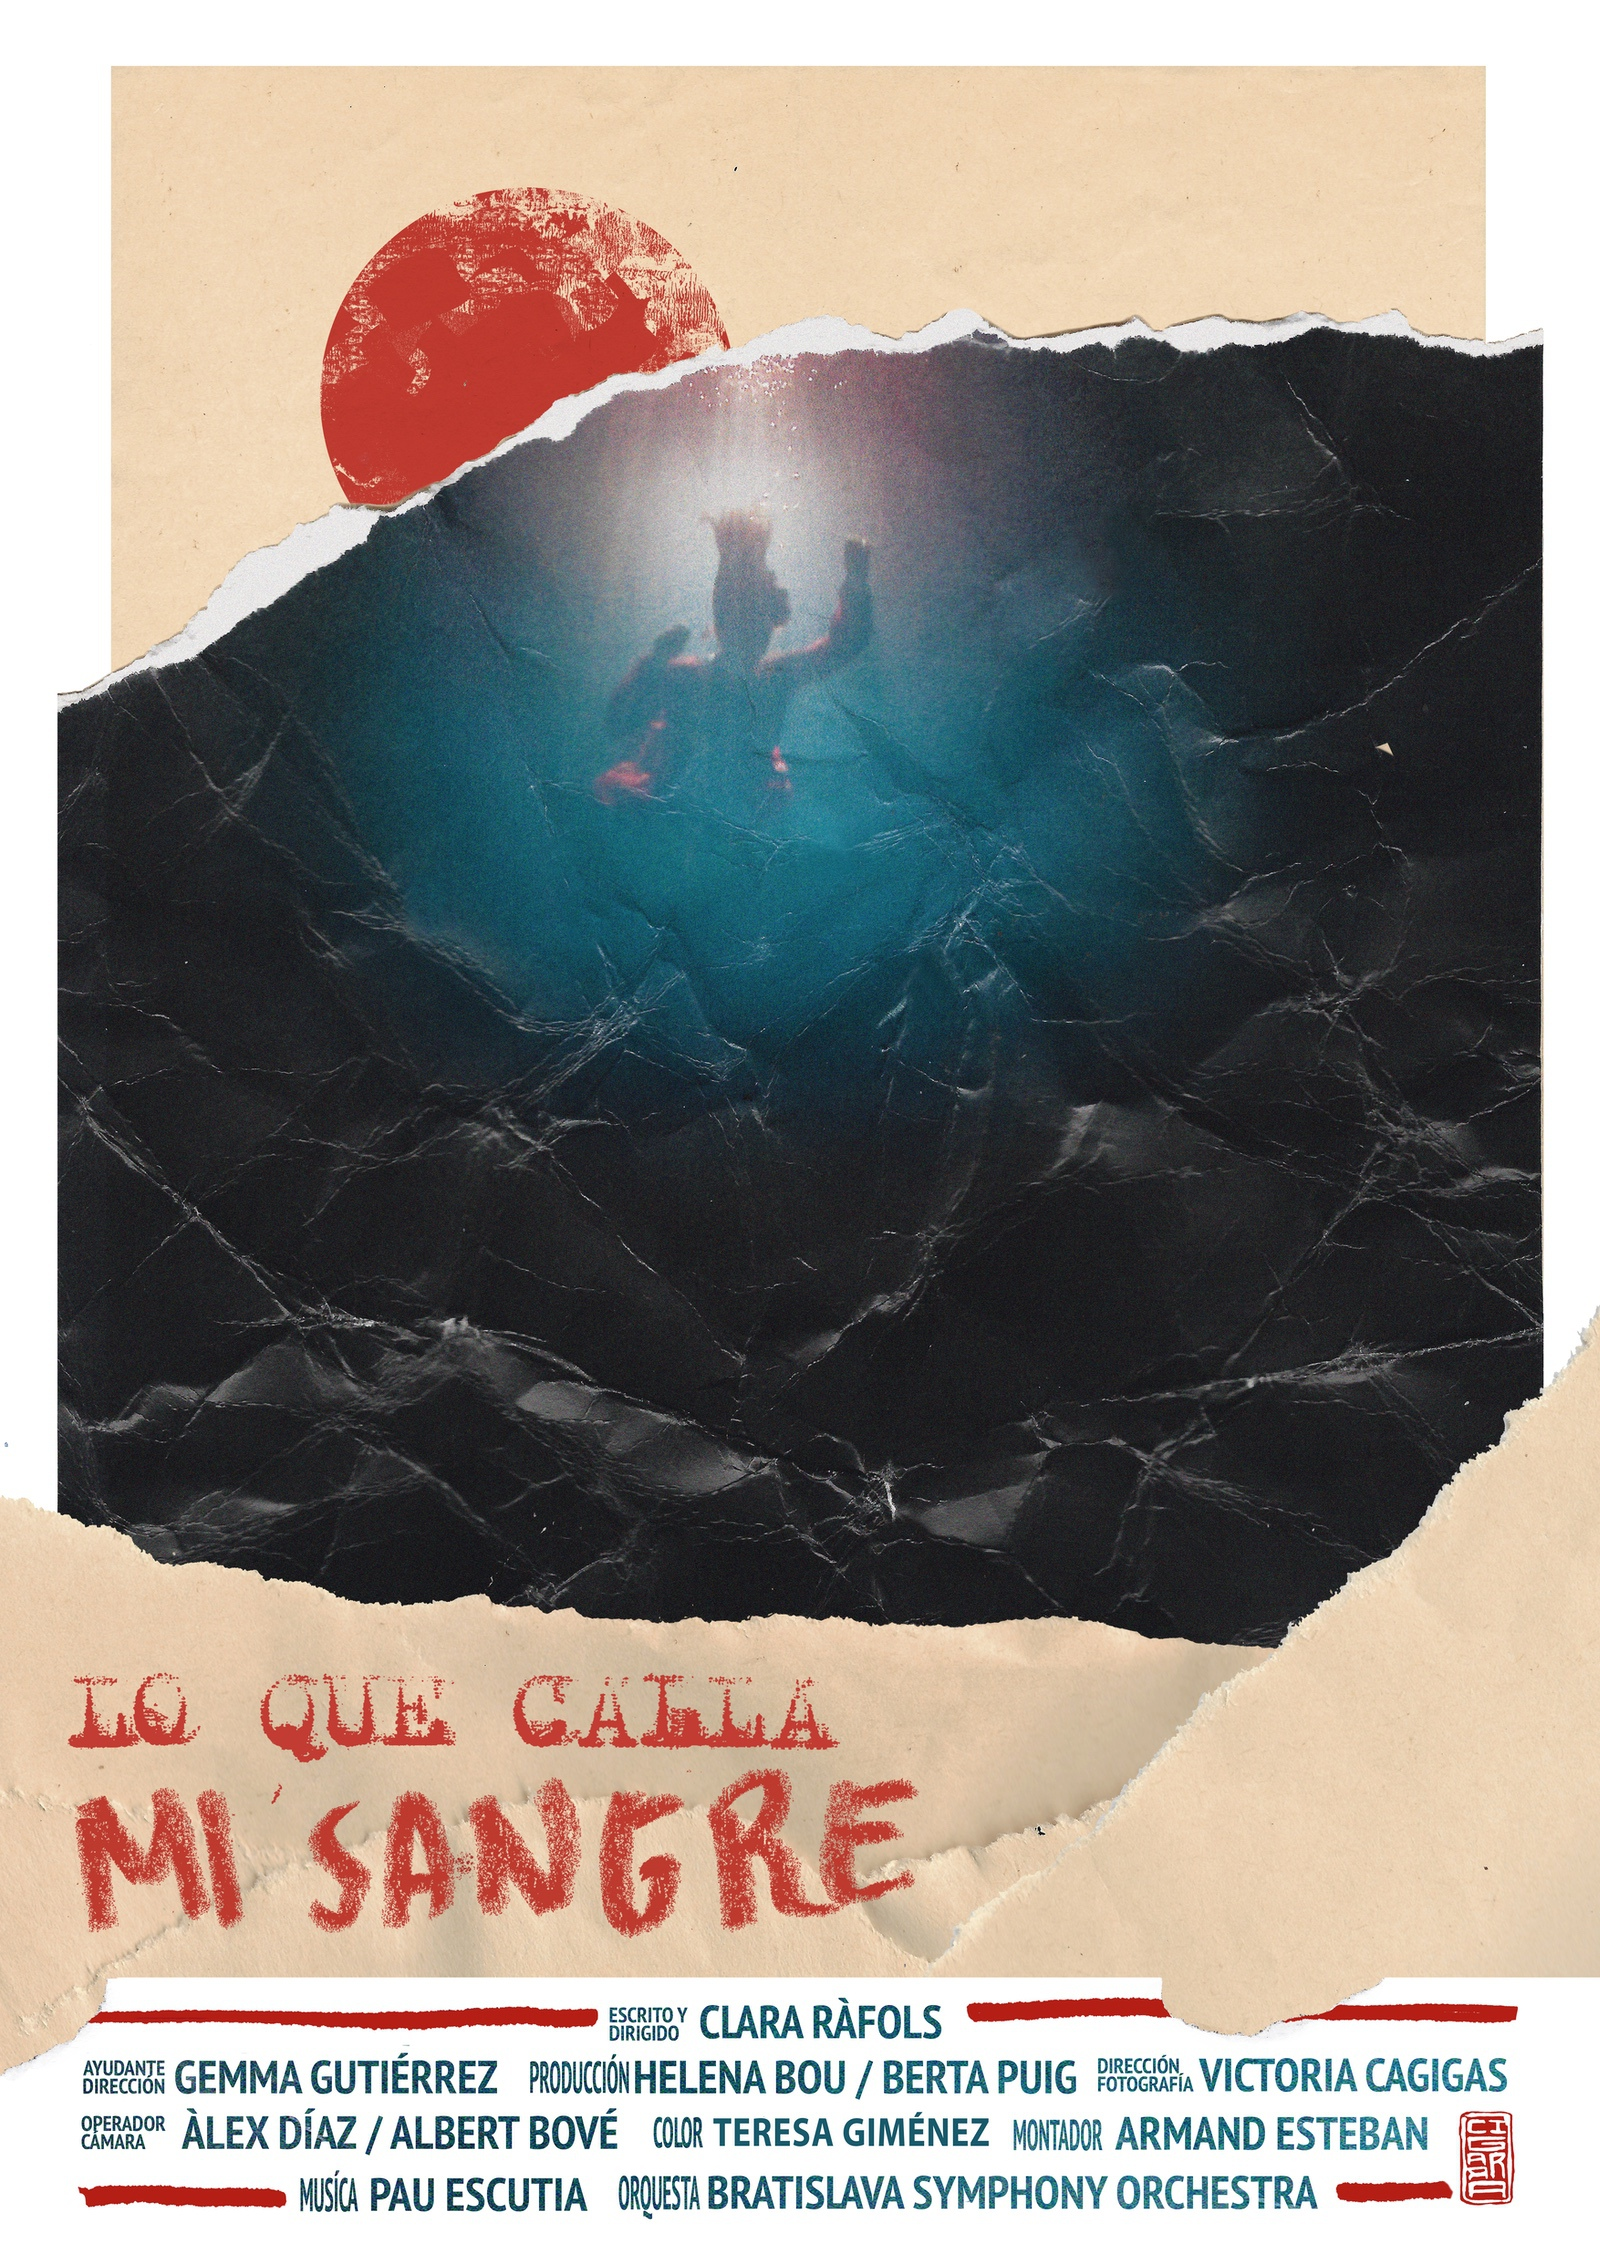 Lo que calla mi sangre (What my blood doesn't say)